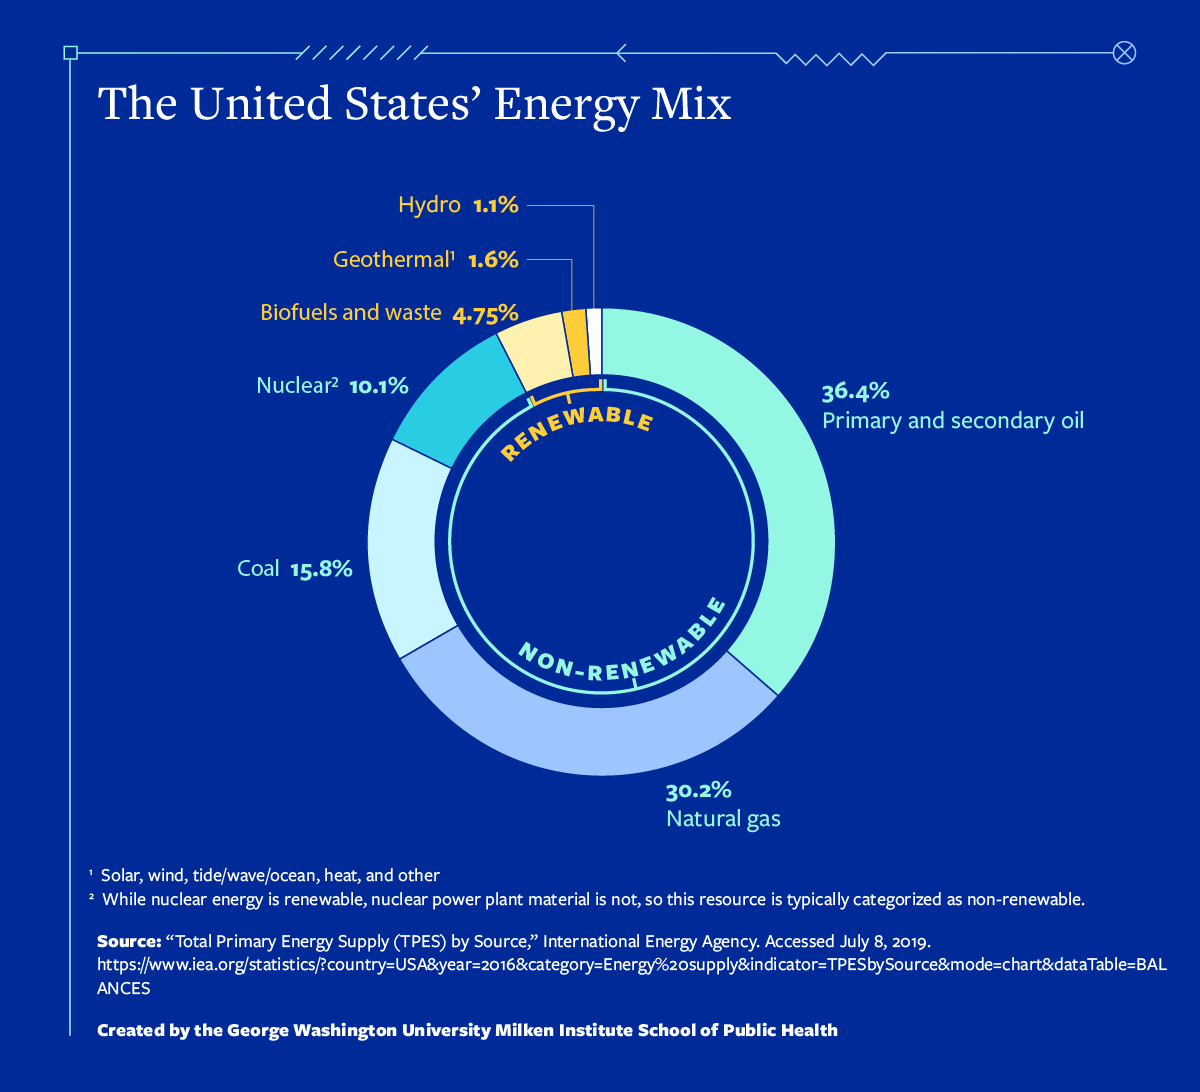 The United States' energy mix comparing renewable and non-renewable energy sources.